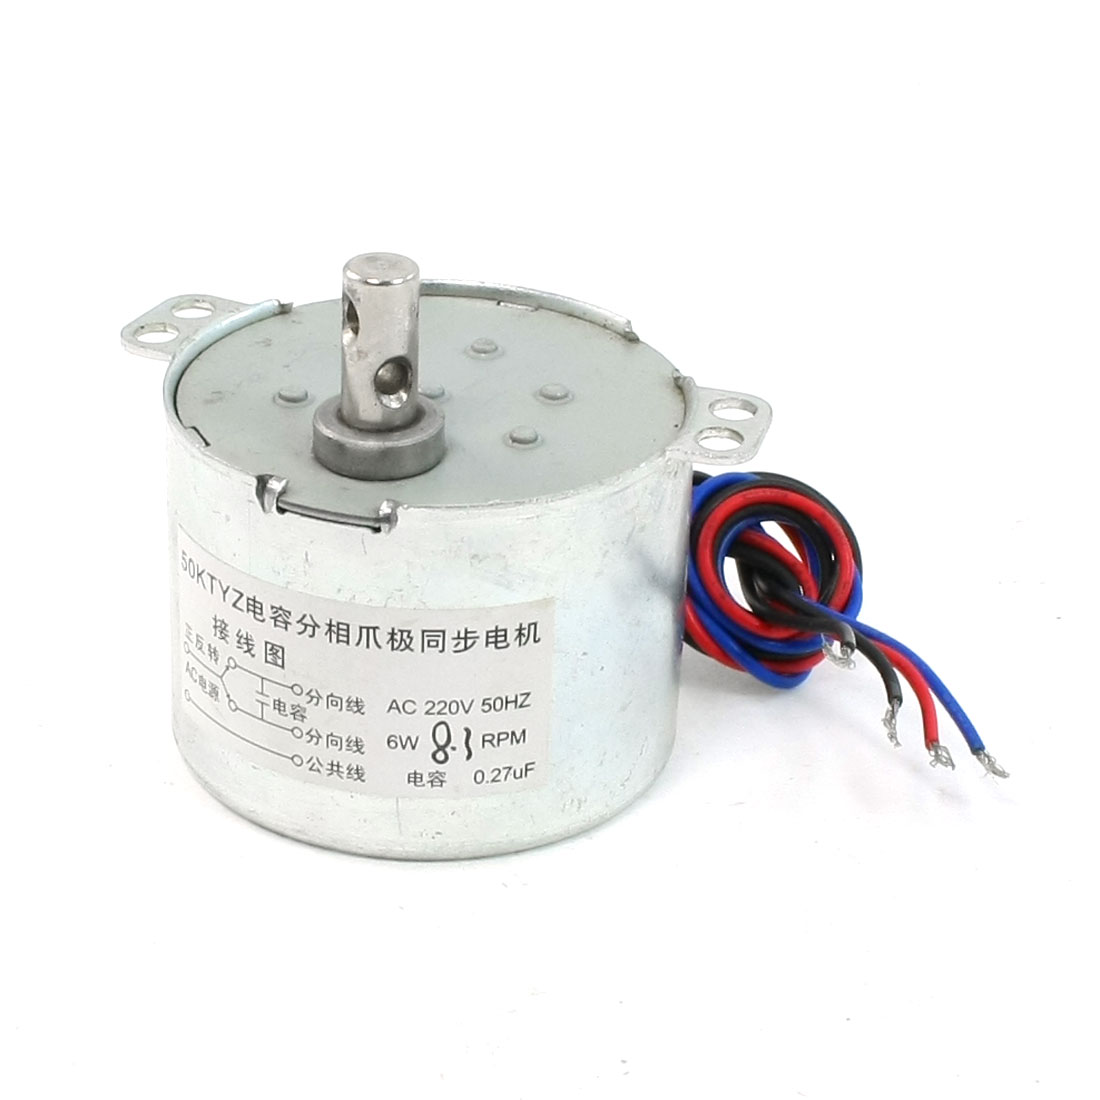 8.3RPM/min 4 Wire Cable Centrifugal Drive Shaft Fan Synchronous Motor AC 220V